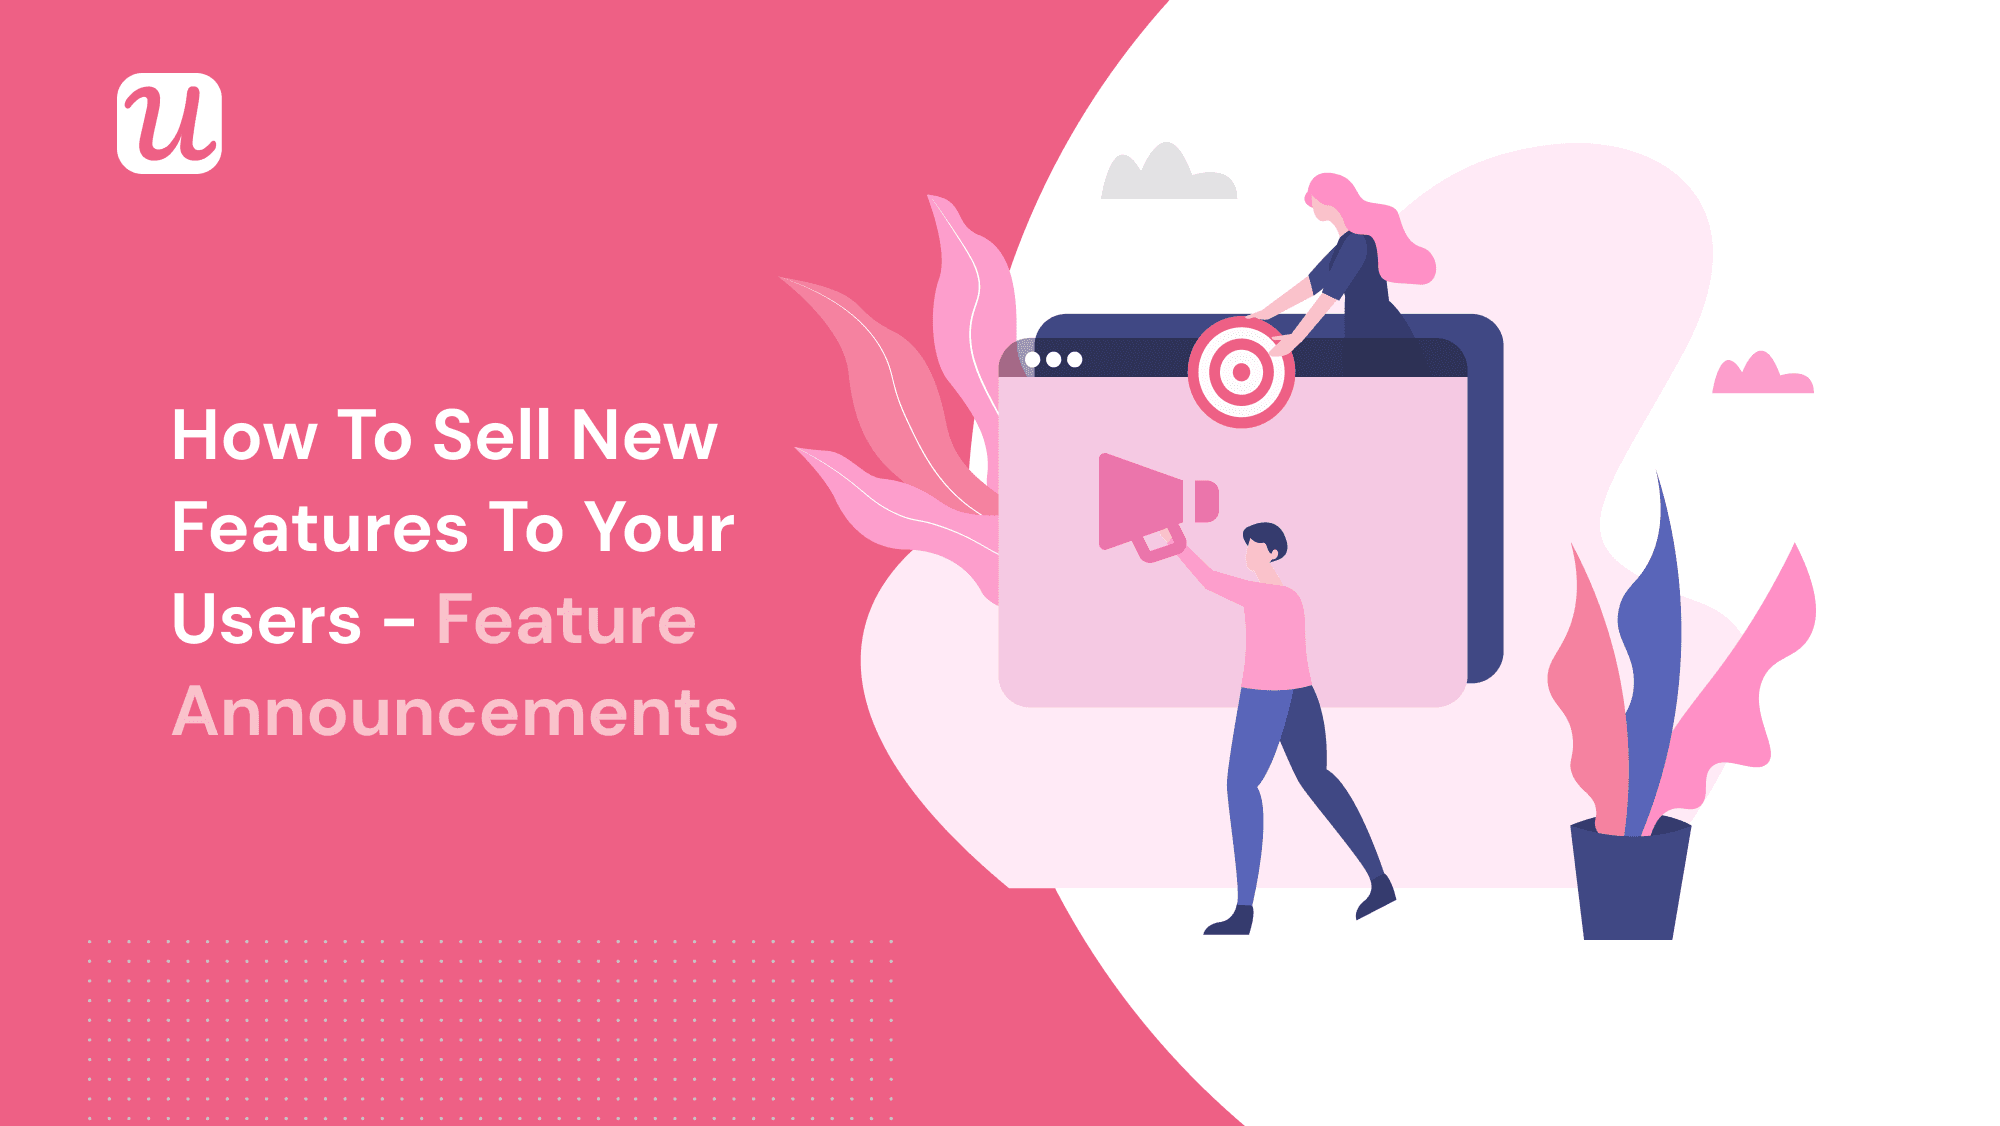 How to Sell New Features to Your Users - Feature Announcements That Skyrocket Adoption